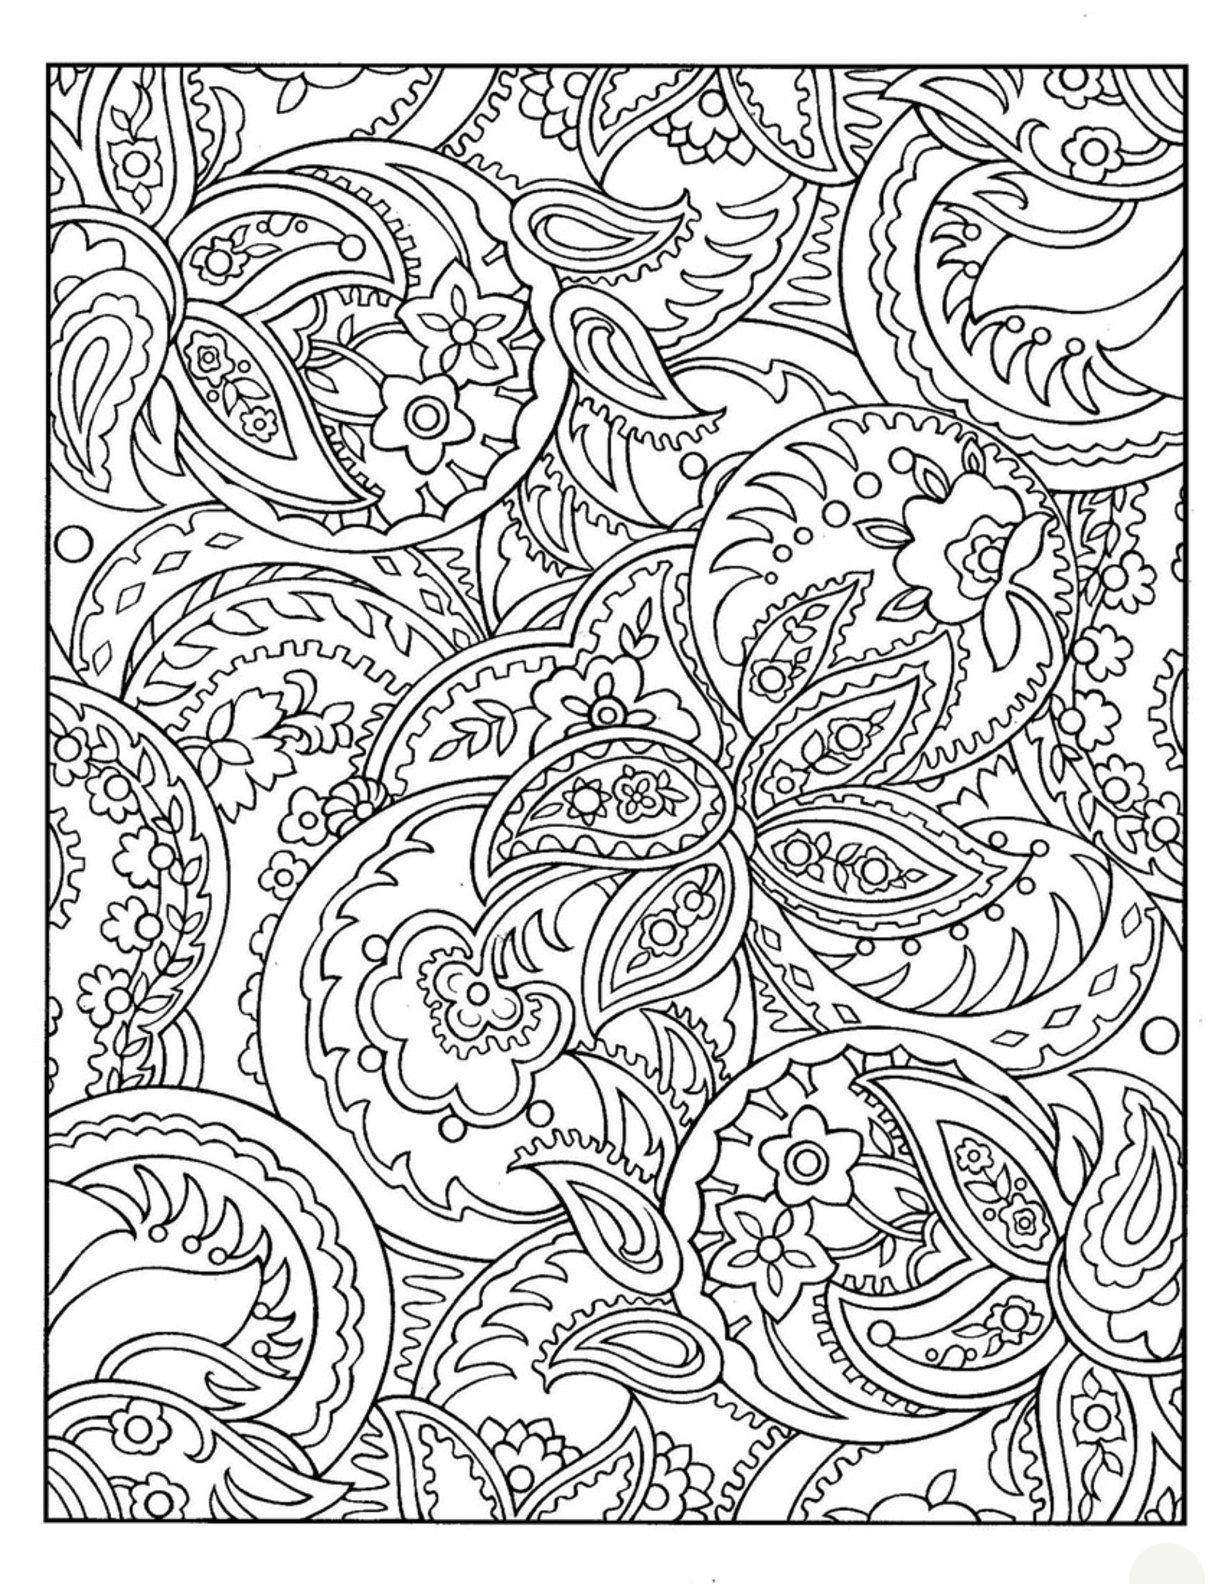 patterns to color in 16 cool coloring pages of designs images cool geometric patterns color to in